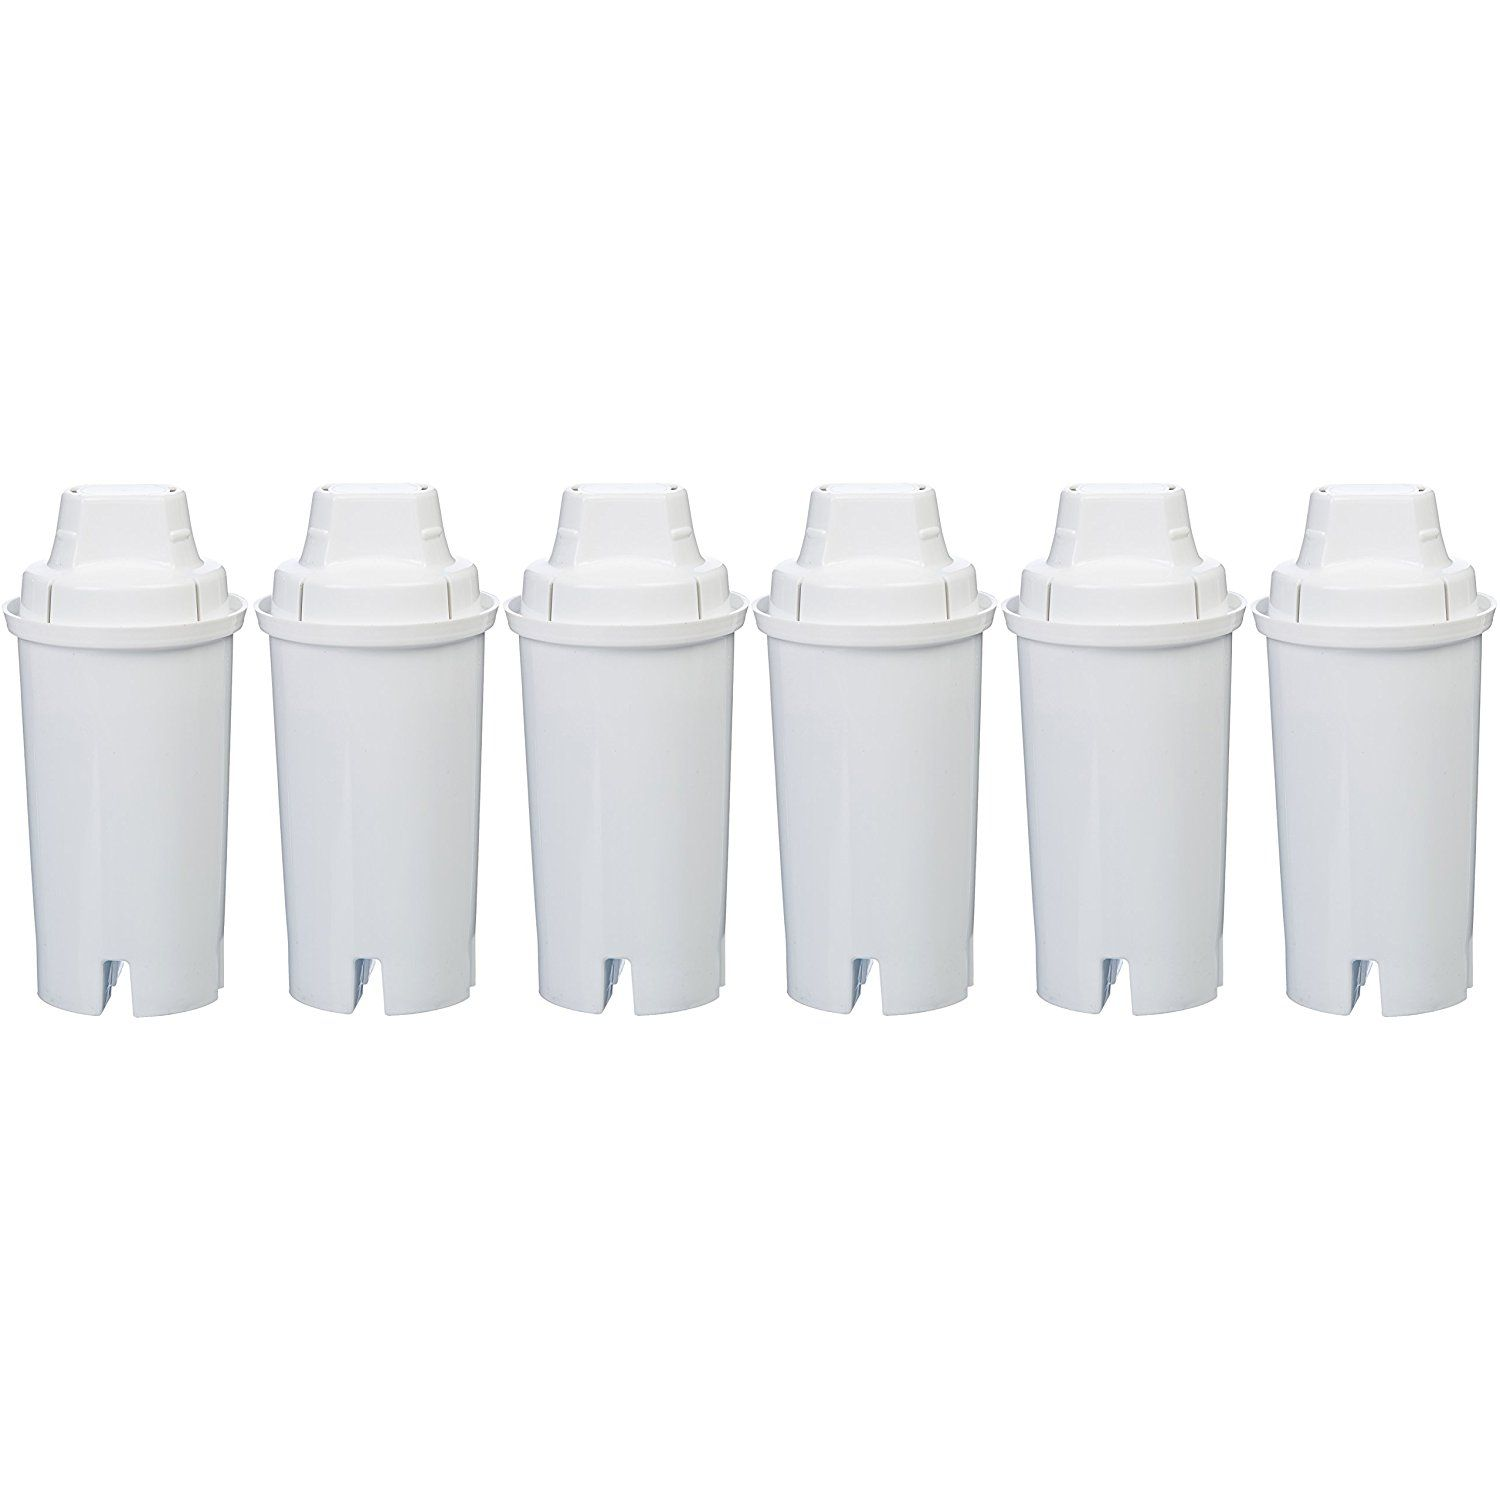 Amazonbasics replacement water filters for amazonbasics